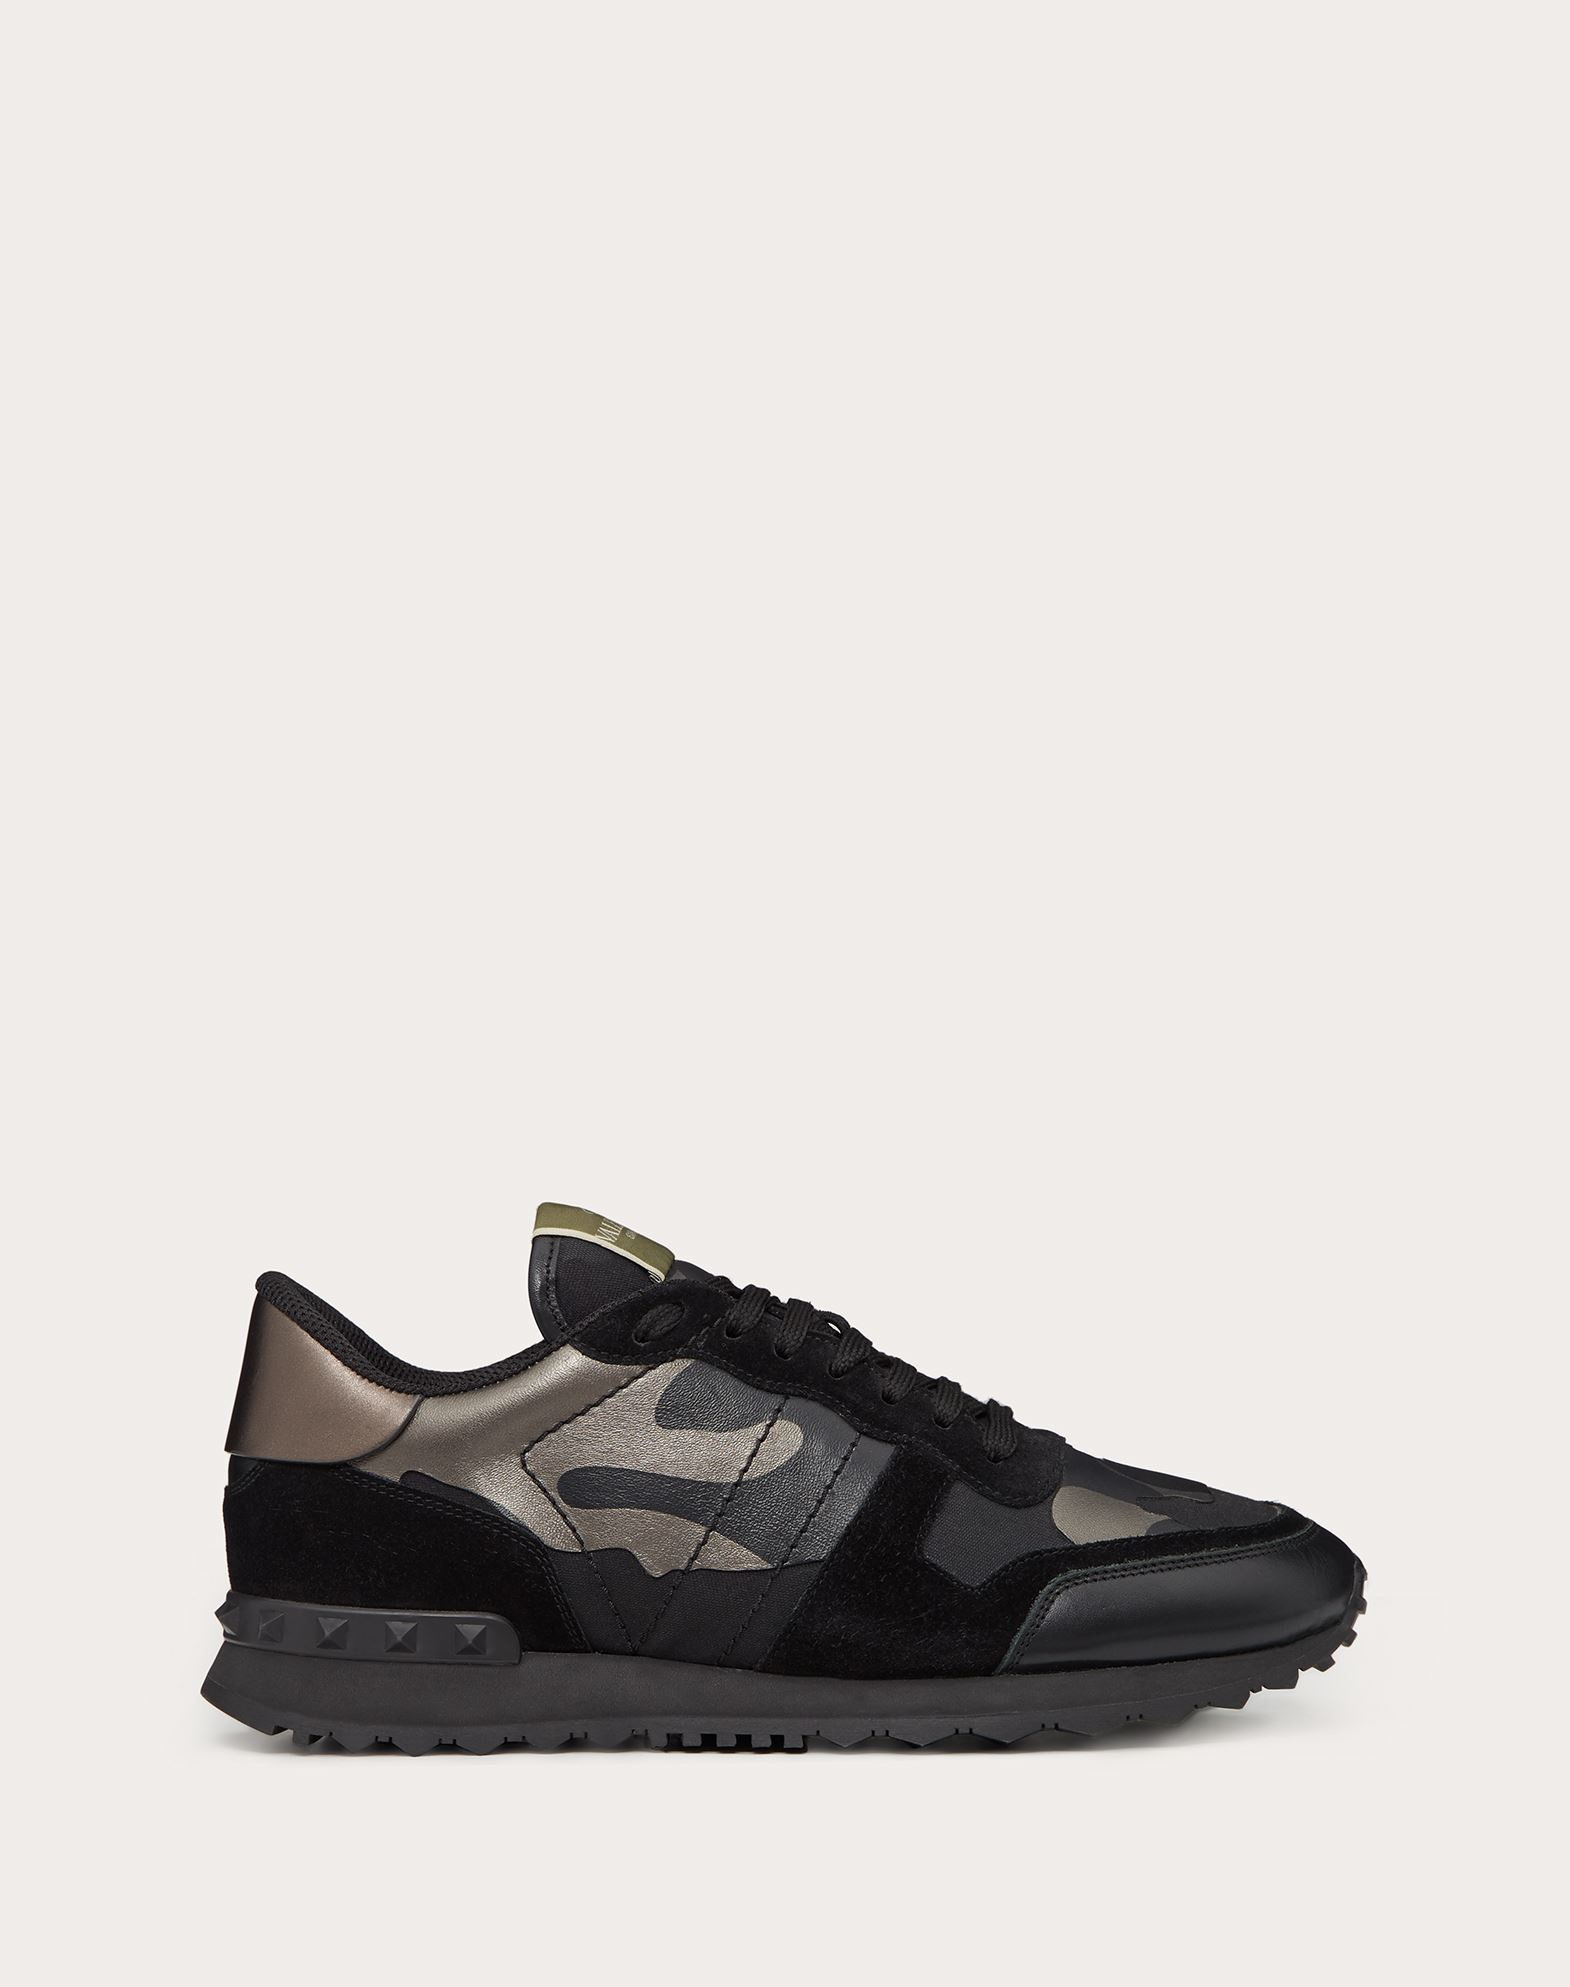 VALENTINO GARAVANI UOMO Camouflage Noir Rockrunner 运动鞋 LOW-TOP SNEAKERS U f